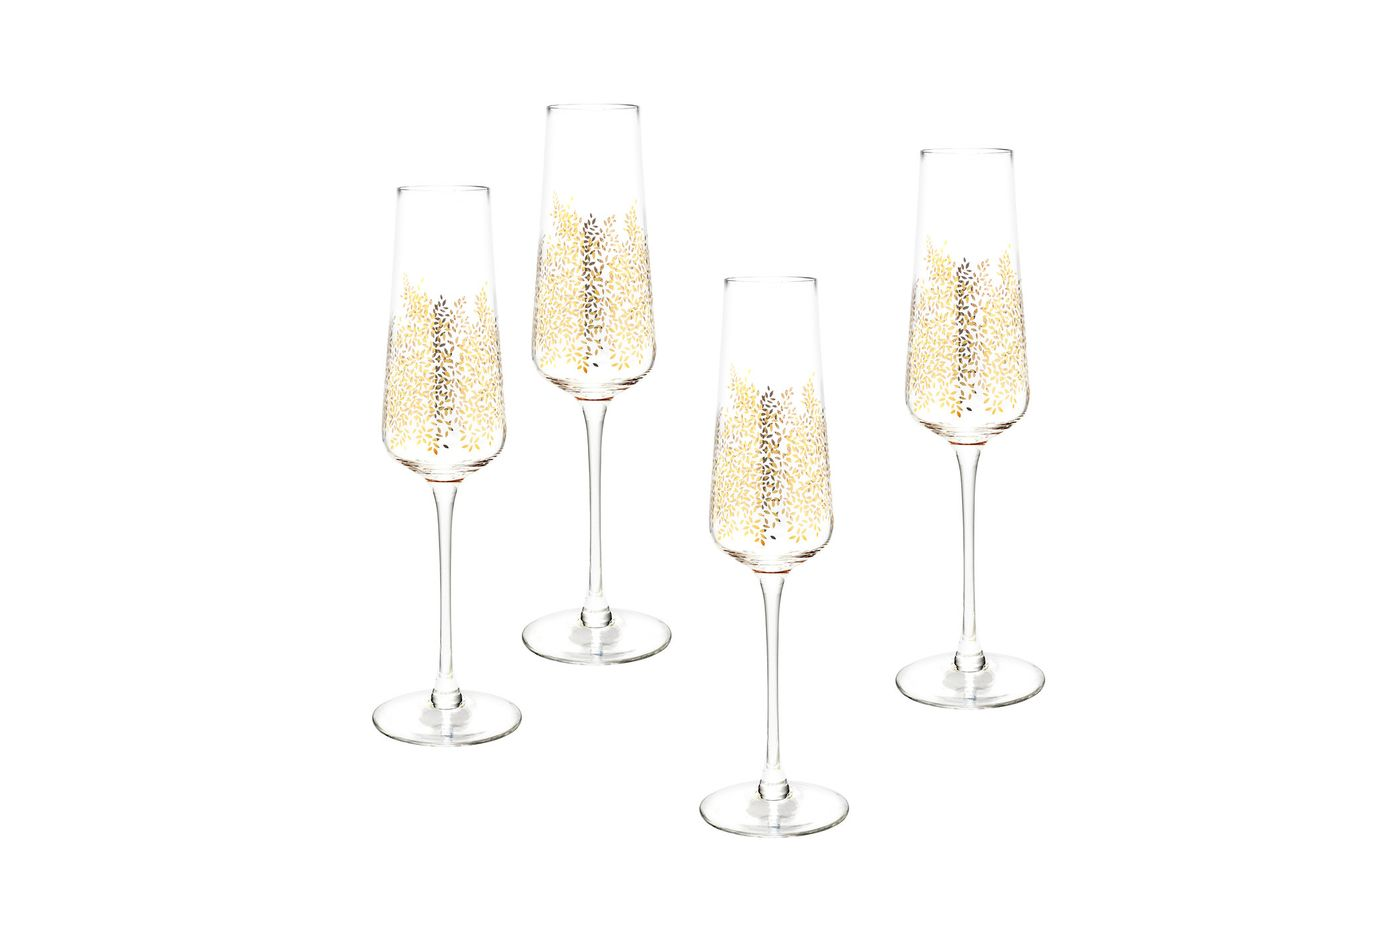 Sara Miller London for Portmeirion Chelsea Collection Set of 4 Flutes Chelsea Gold Leaf 0.44l thumb 1